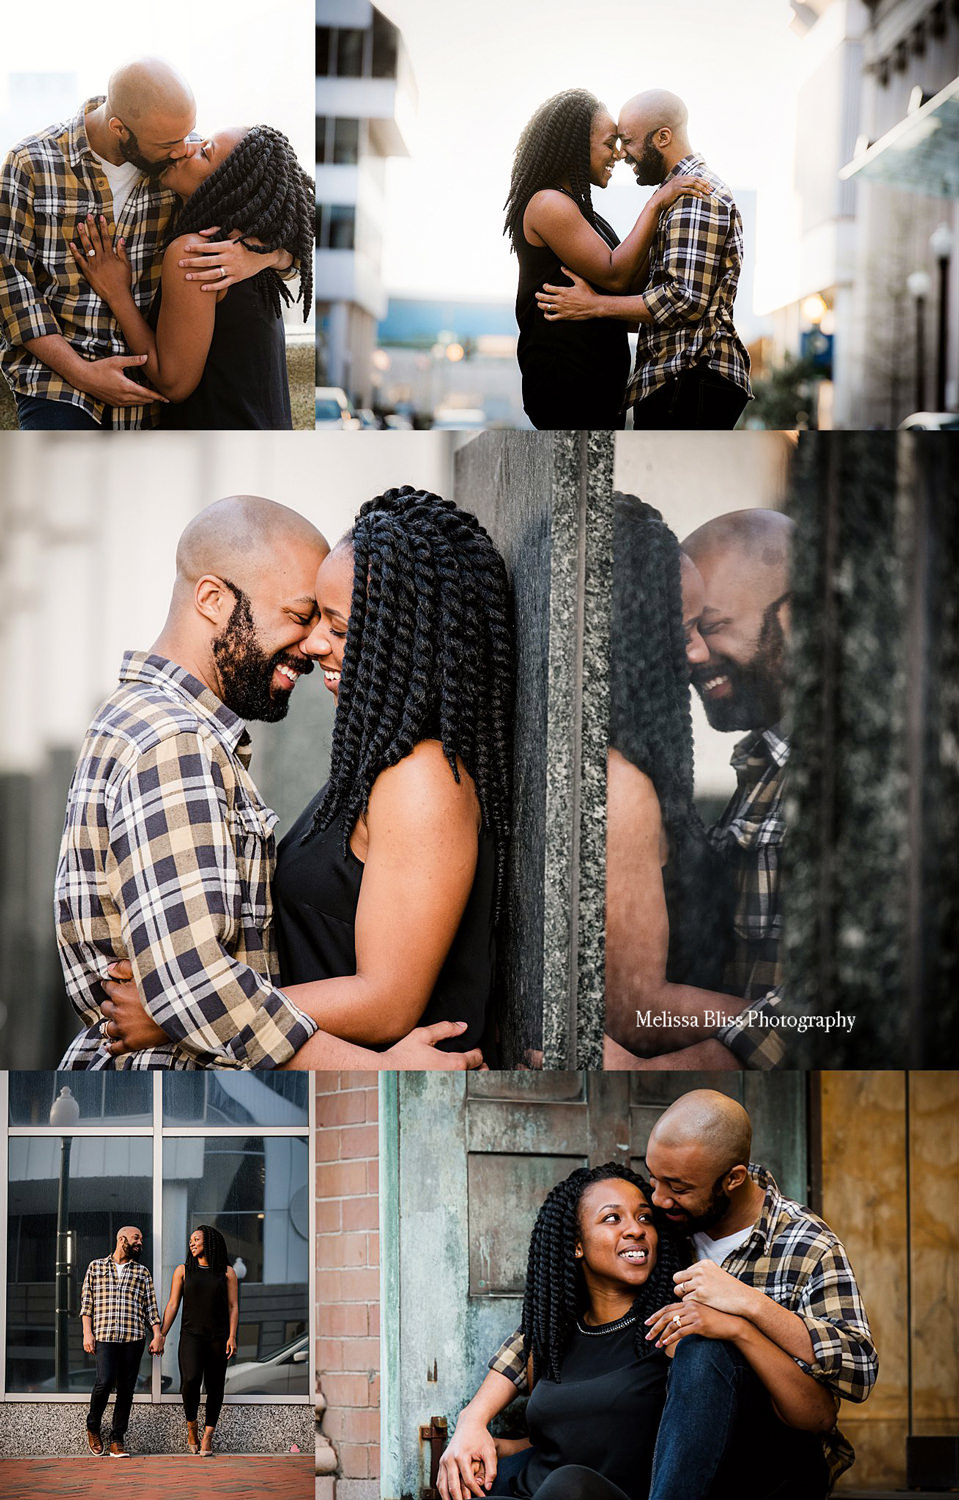 downtown-norfolk-engagement-photoshoot-melissa-bliss-photography-VA-wedding-photographer.jpg